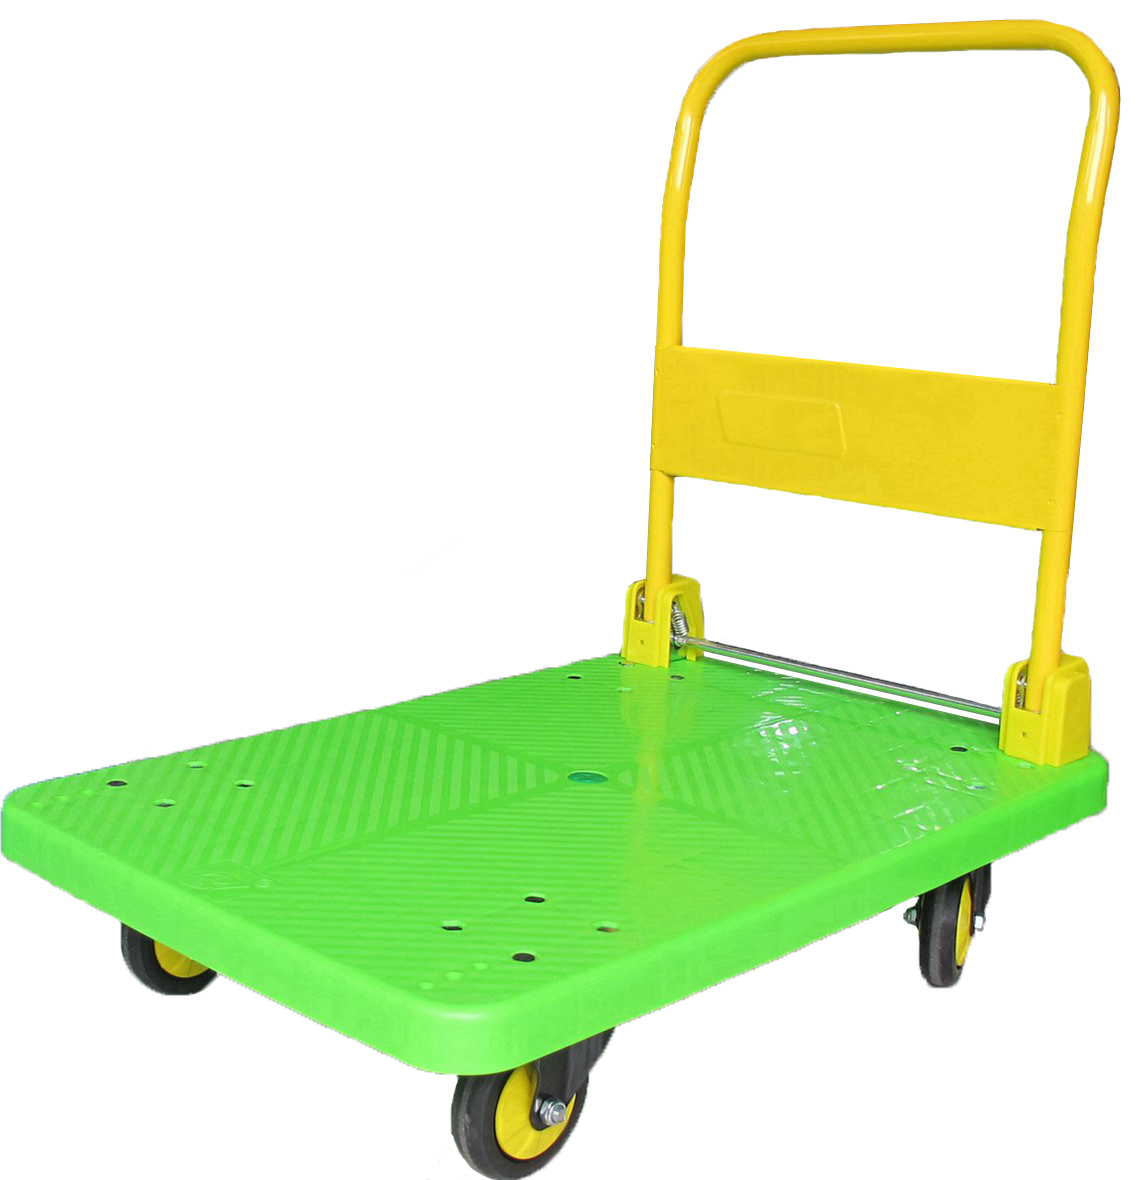 300kg Fashion Green Platform Handcart Noiseless Plastic Trolley